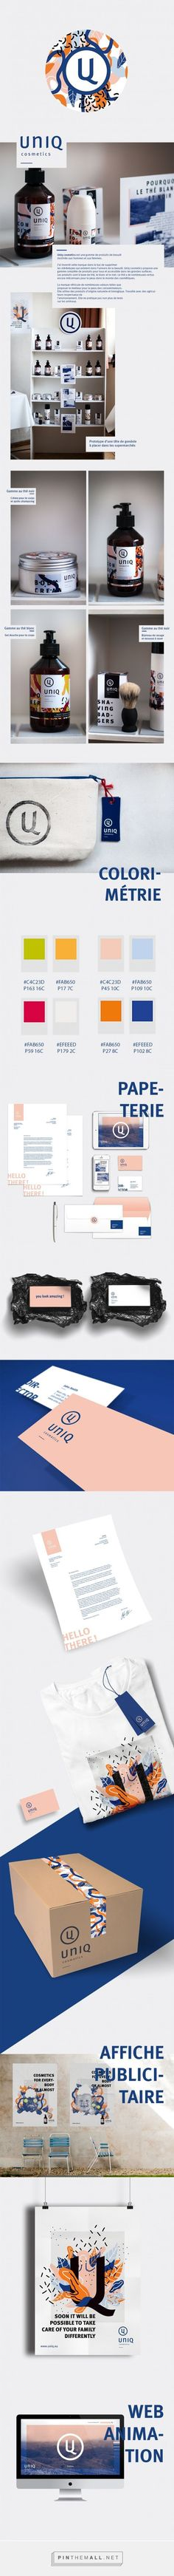 UNIQ Cosmetics Branding and Packaging by Adele Peers   Fivestar Branding Agency – Design and Branding Agency & Curated Inspiration Gallery